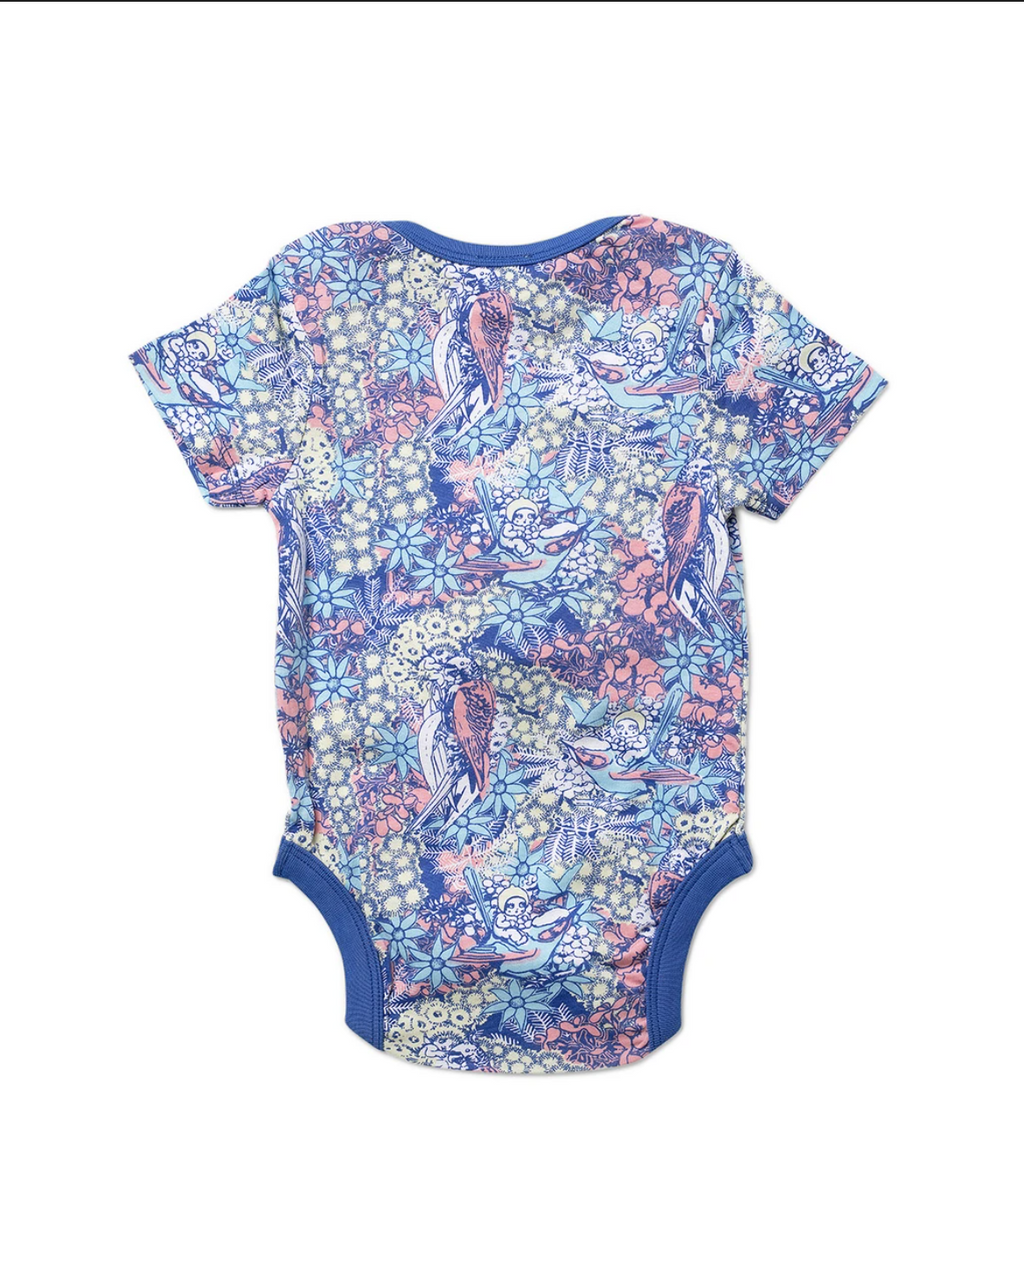 May Gibbs Wren Onesie - Night Song